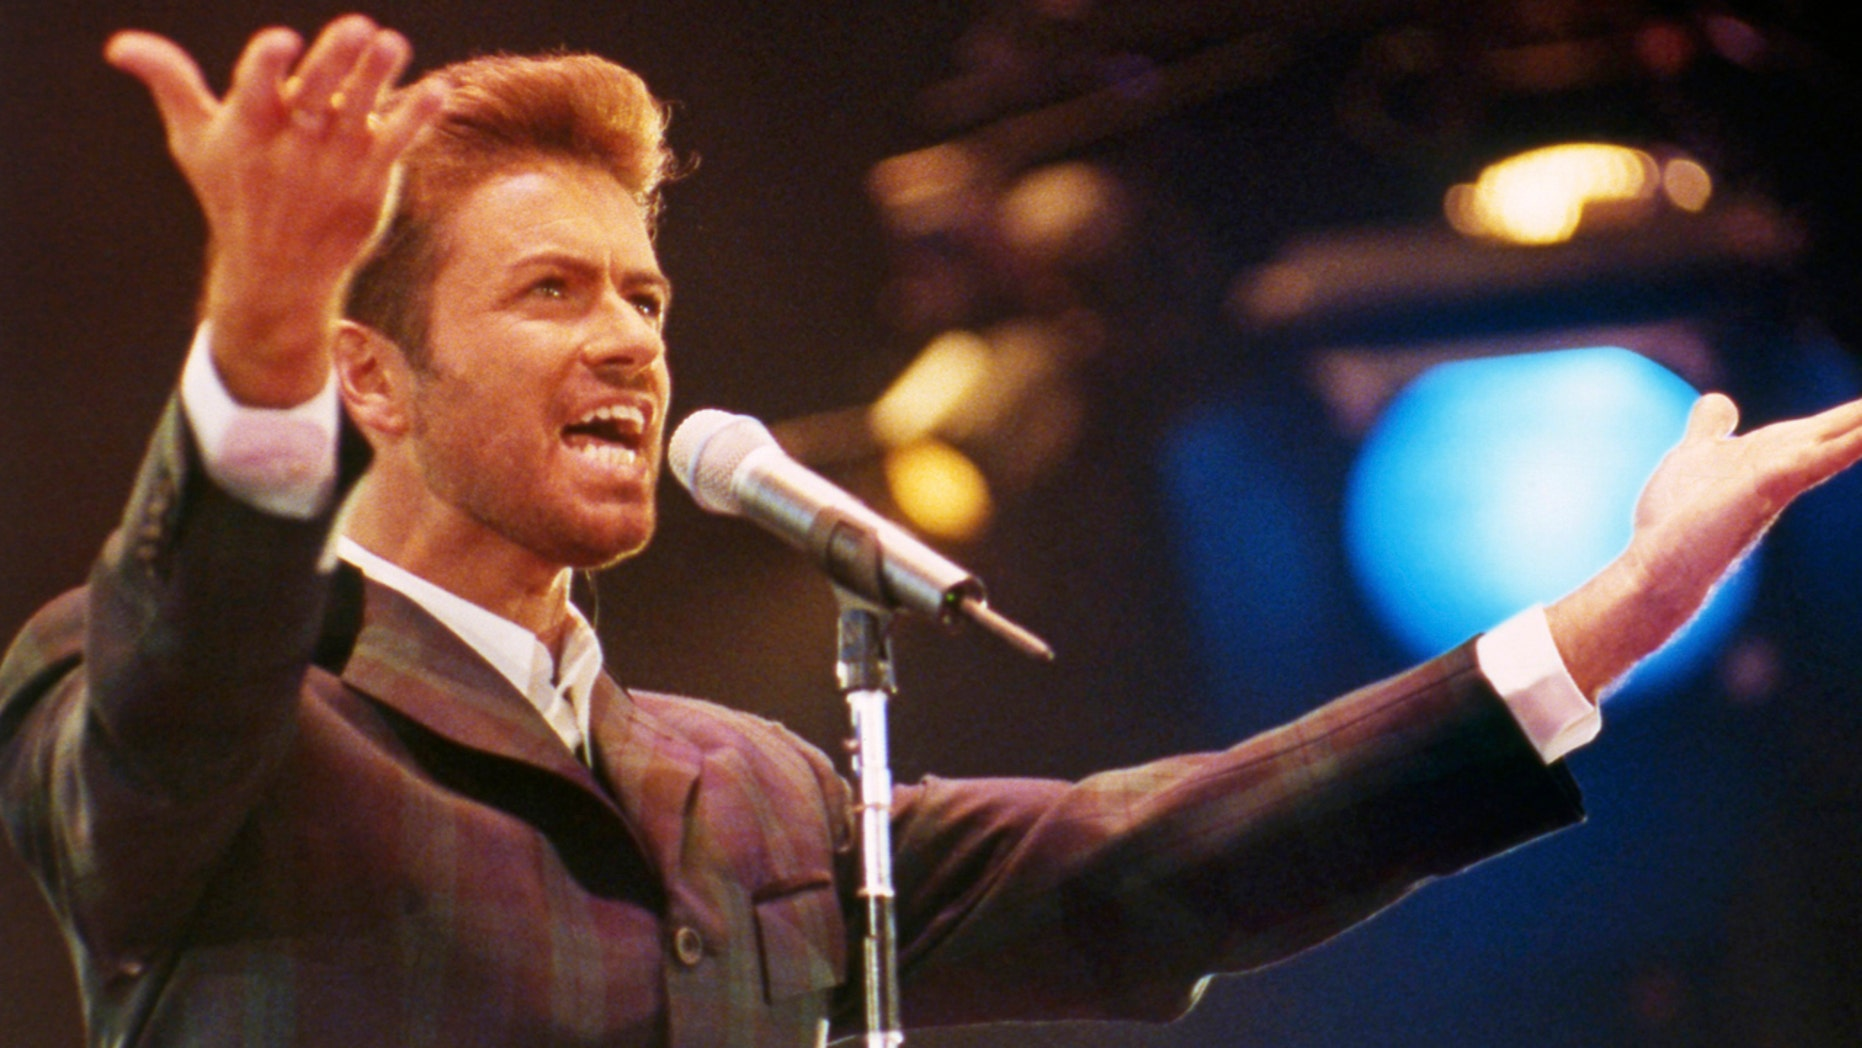 Dec. 2, 1993: George Michael performs at the 'Concert of Hope' to mark World AIDS Day at Wembley Arena in London.